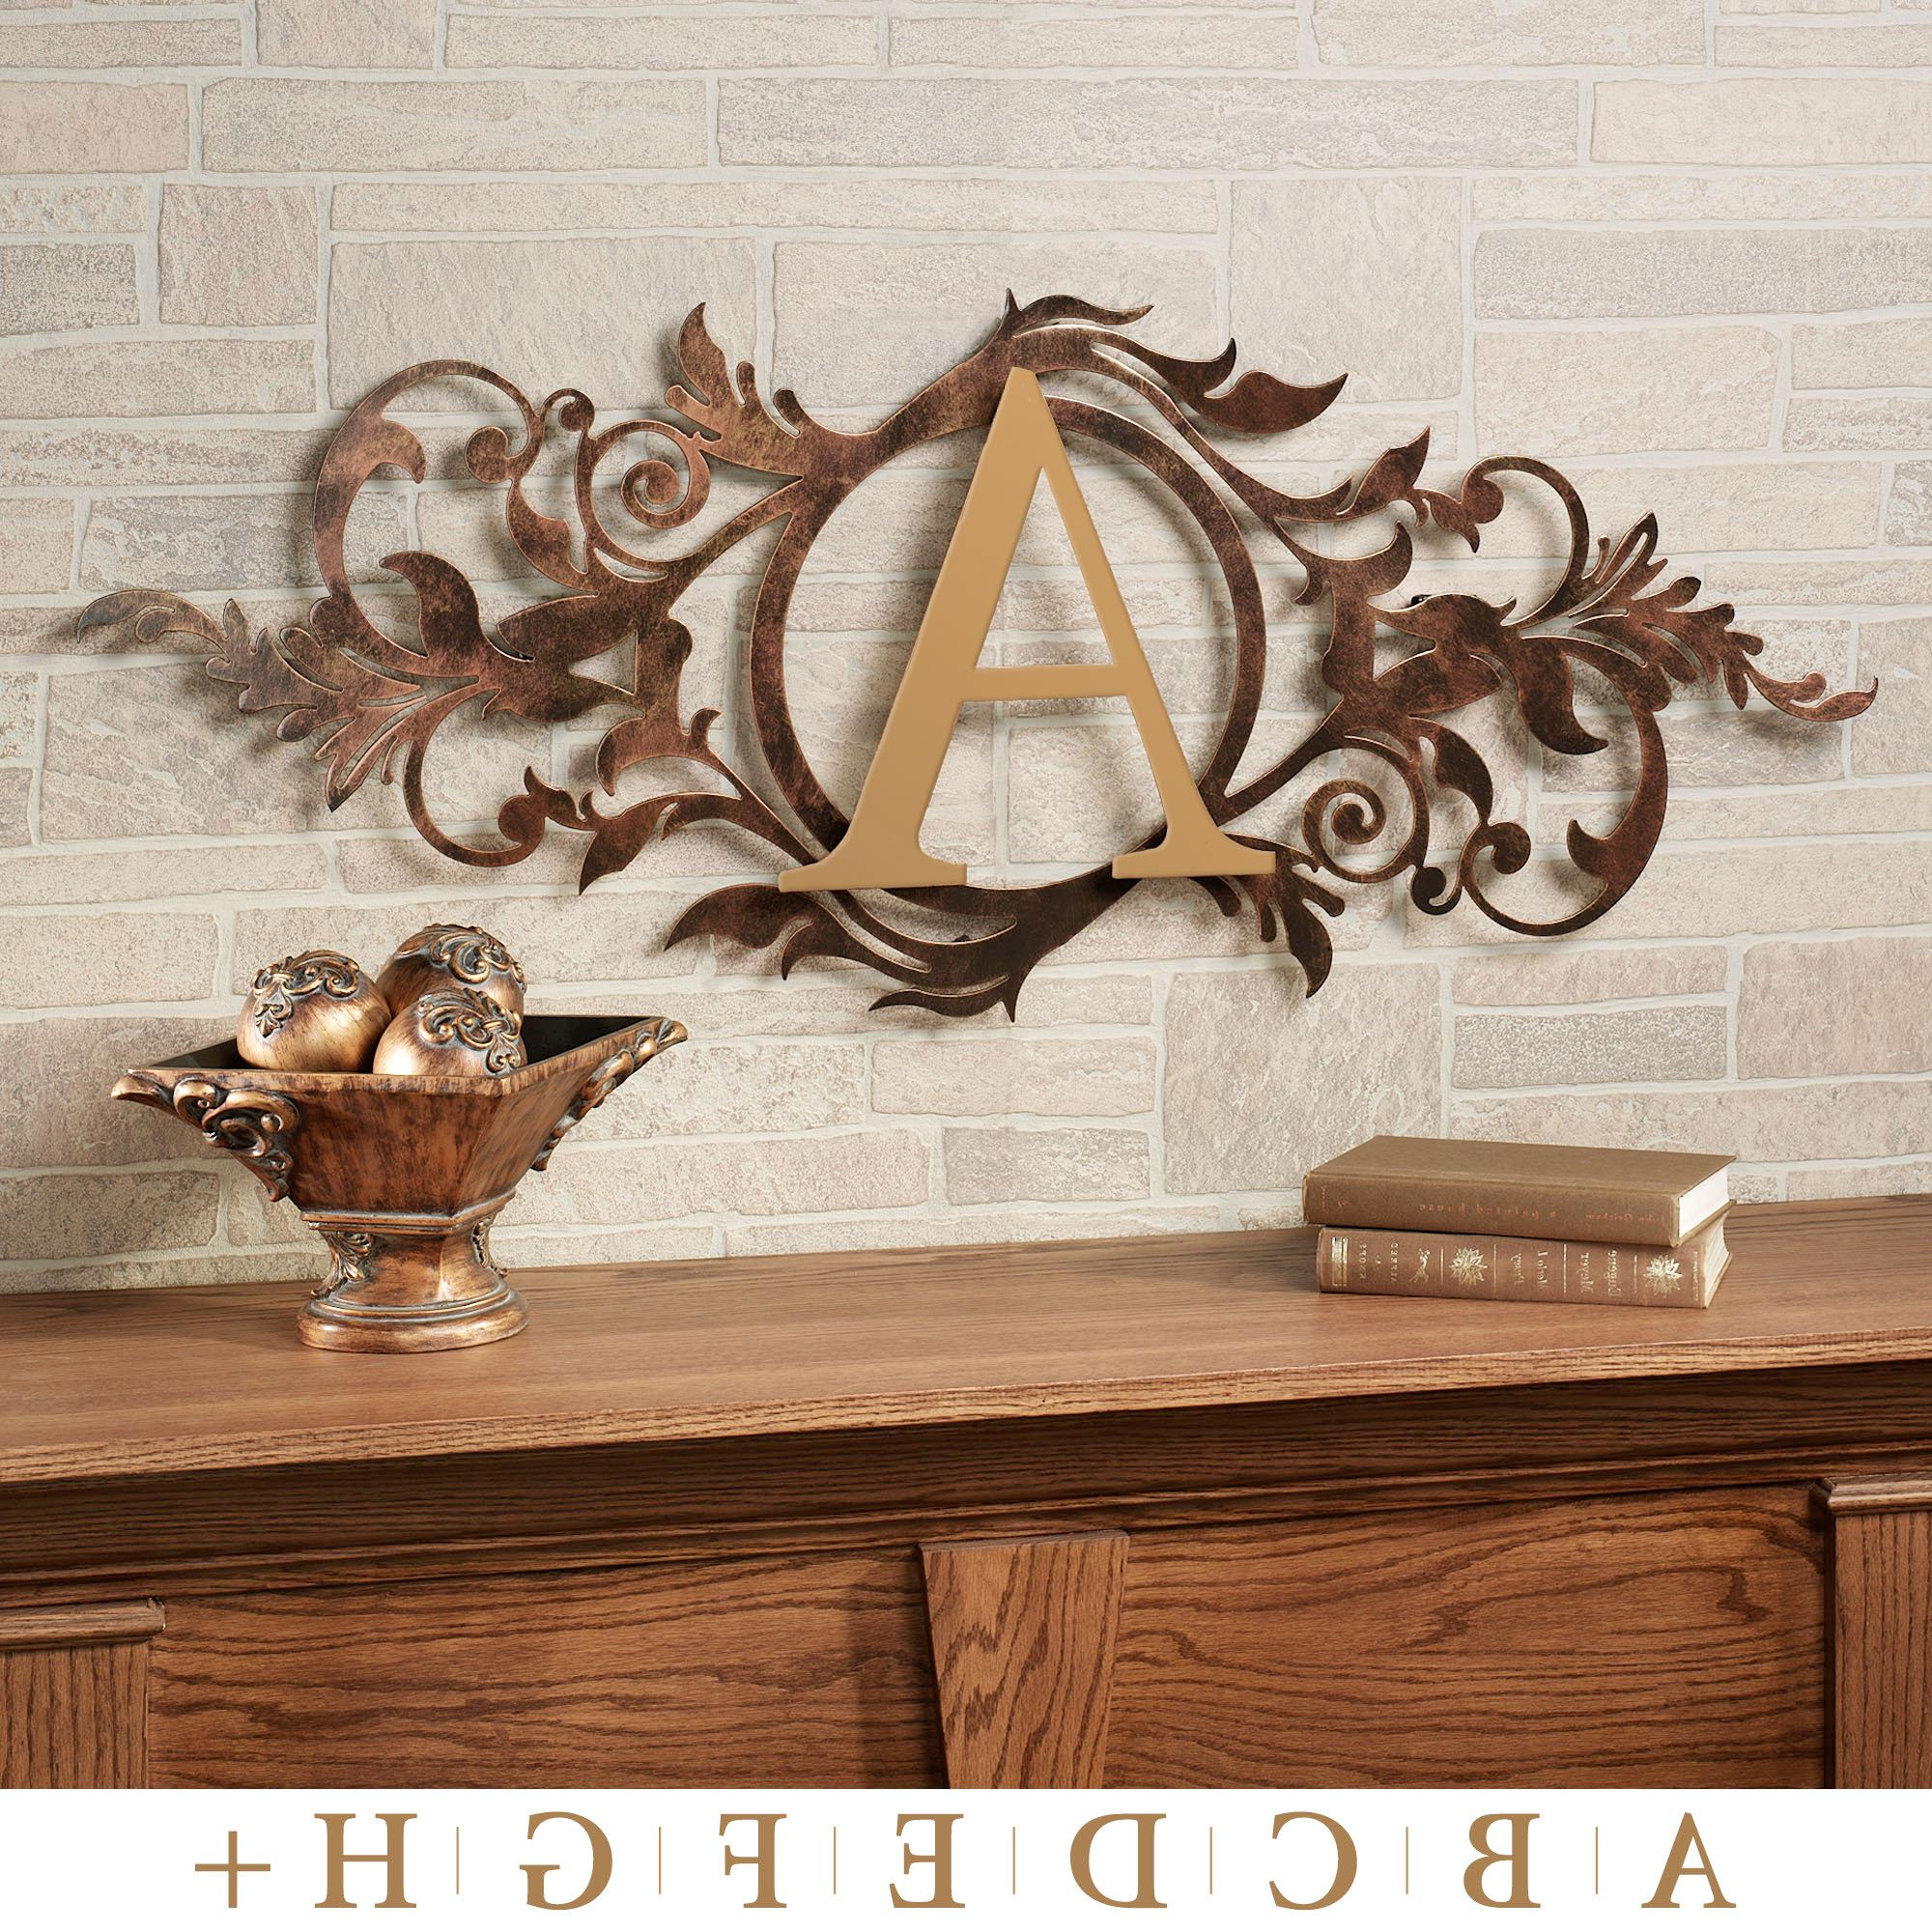 Meglynn Monogram Horizontal Metal Wall Art Sign Intended For Best And Newest Ornamental Wood And Metal Scroll Wall Decor (Gallery 20 of 20)